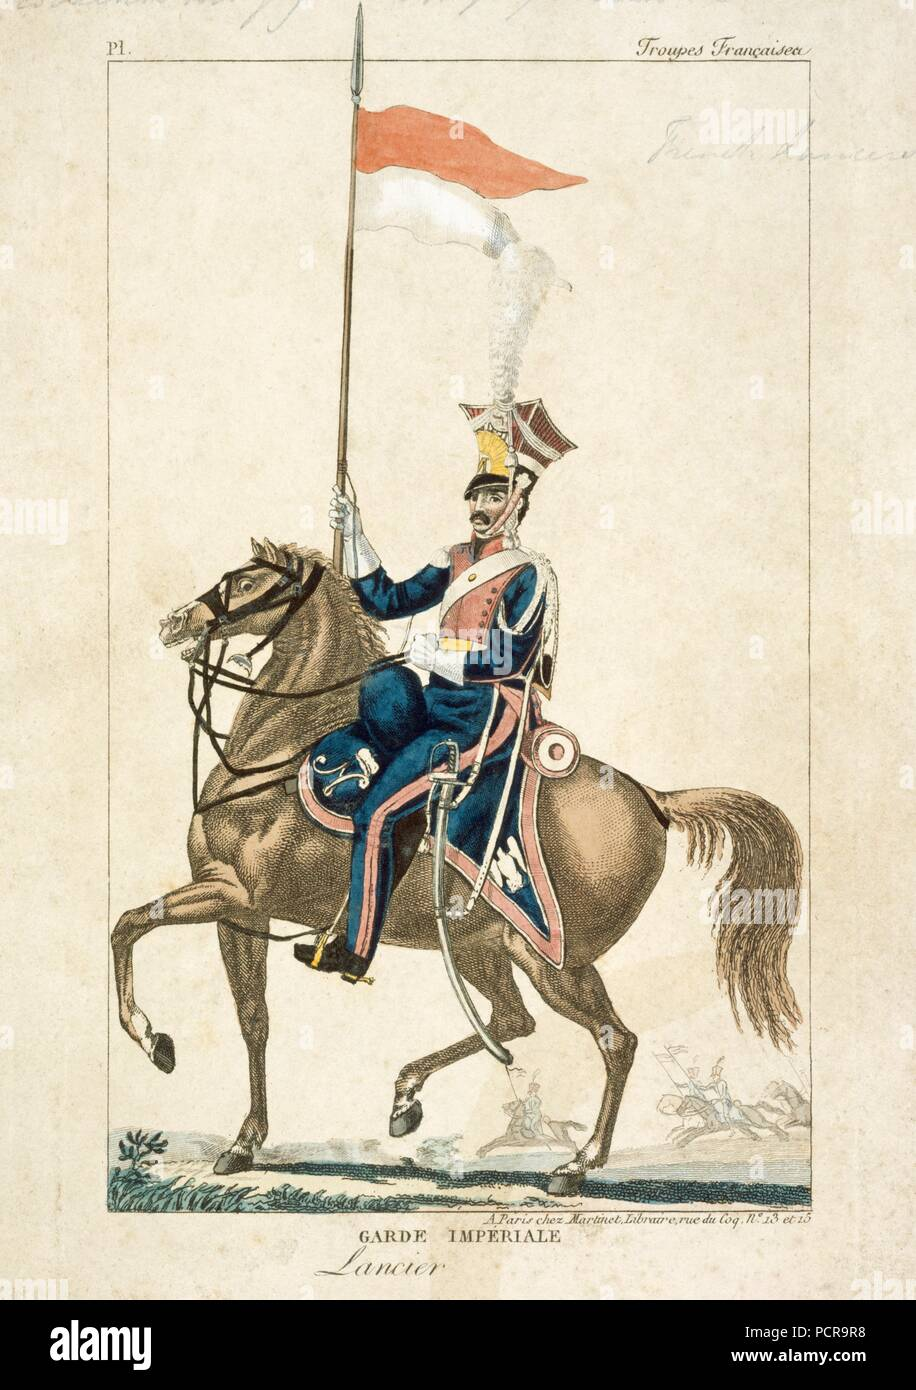 French lancer of the Imperial Guard, Napoleonic Wars, c1815. Engraving produced in Paris. In 1815 at the Battle of Waterloo this unit formed part of General Lefebvre-Desnouettes Guard Light Cavalry Division, which took part in Marshal Ney's massed cavalry attack on the British lines. They had also been engaged at the Battle of Quatre Bras on 16 June as scouts ahead of Marshal Ney's main body. - Stock Image